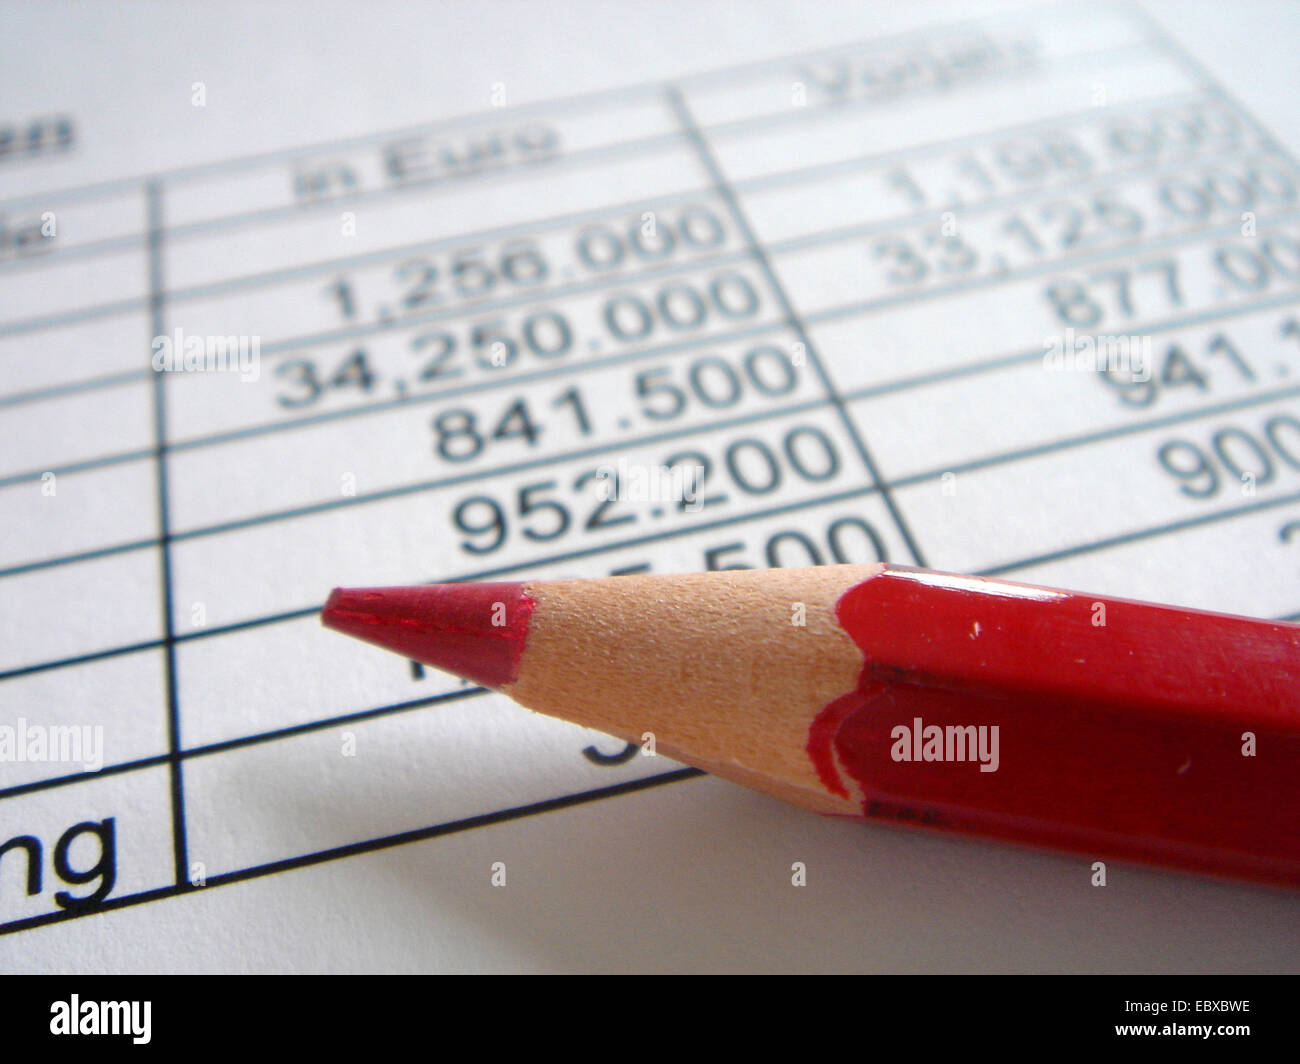 red pencil lying beside a balance sheet - Stock Image